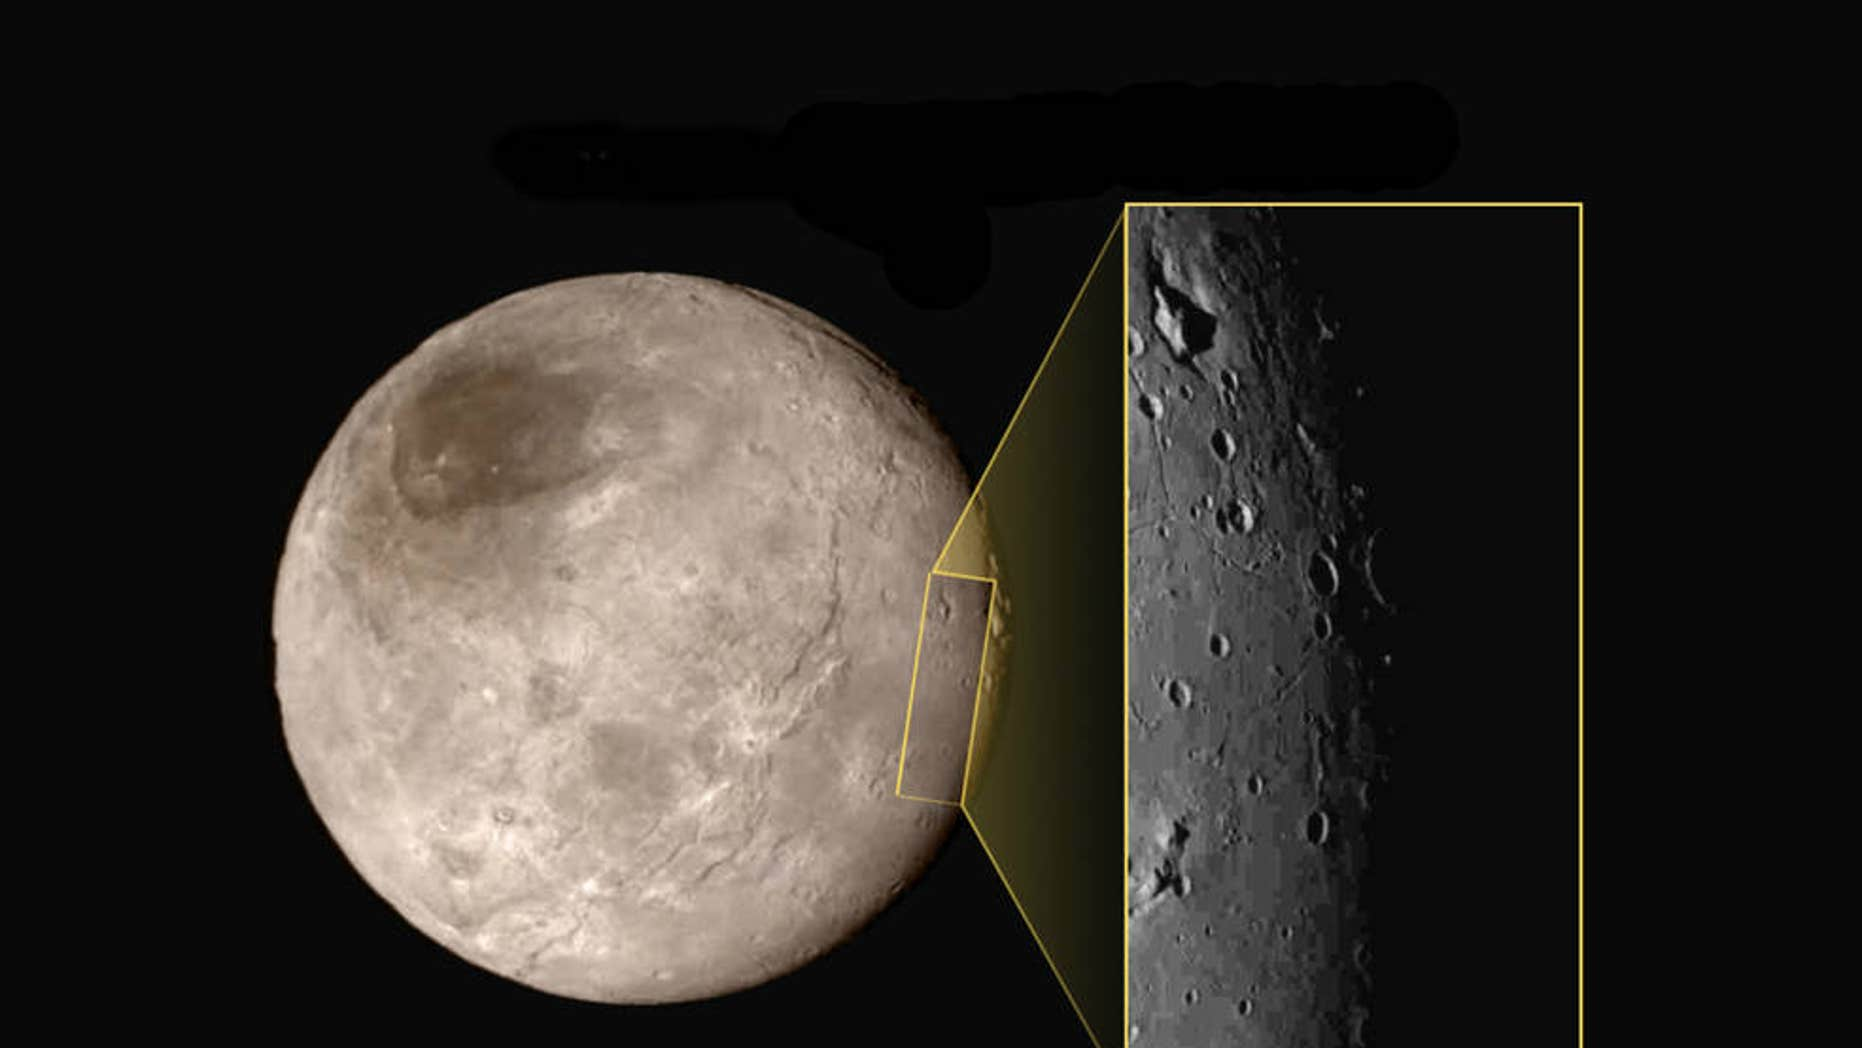 Closeup image of an area on Pluto's largest moon Charon.